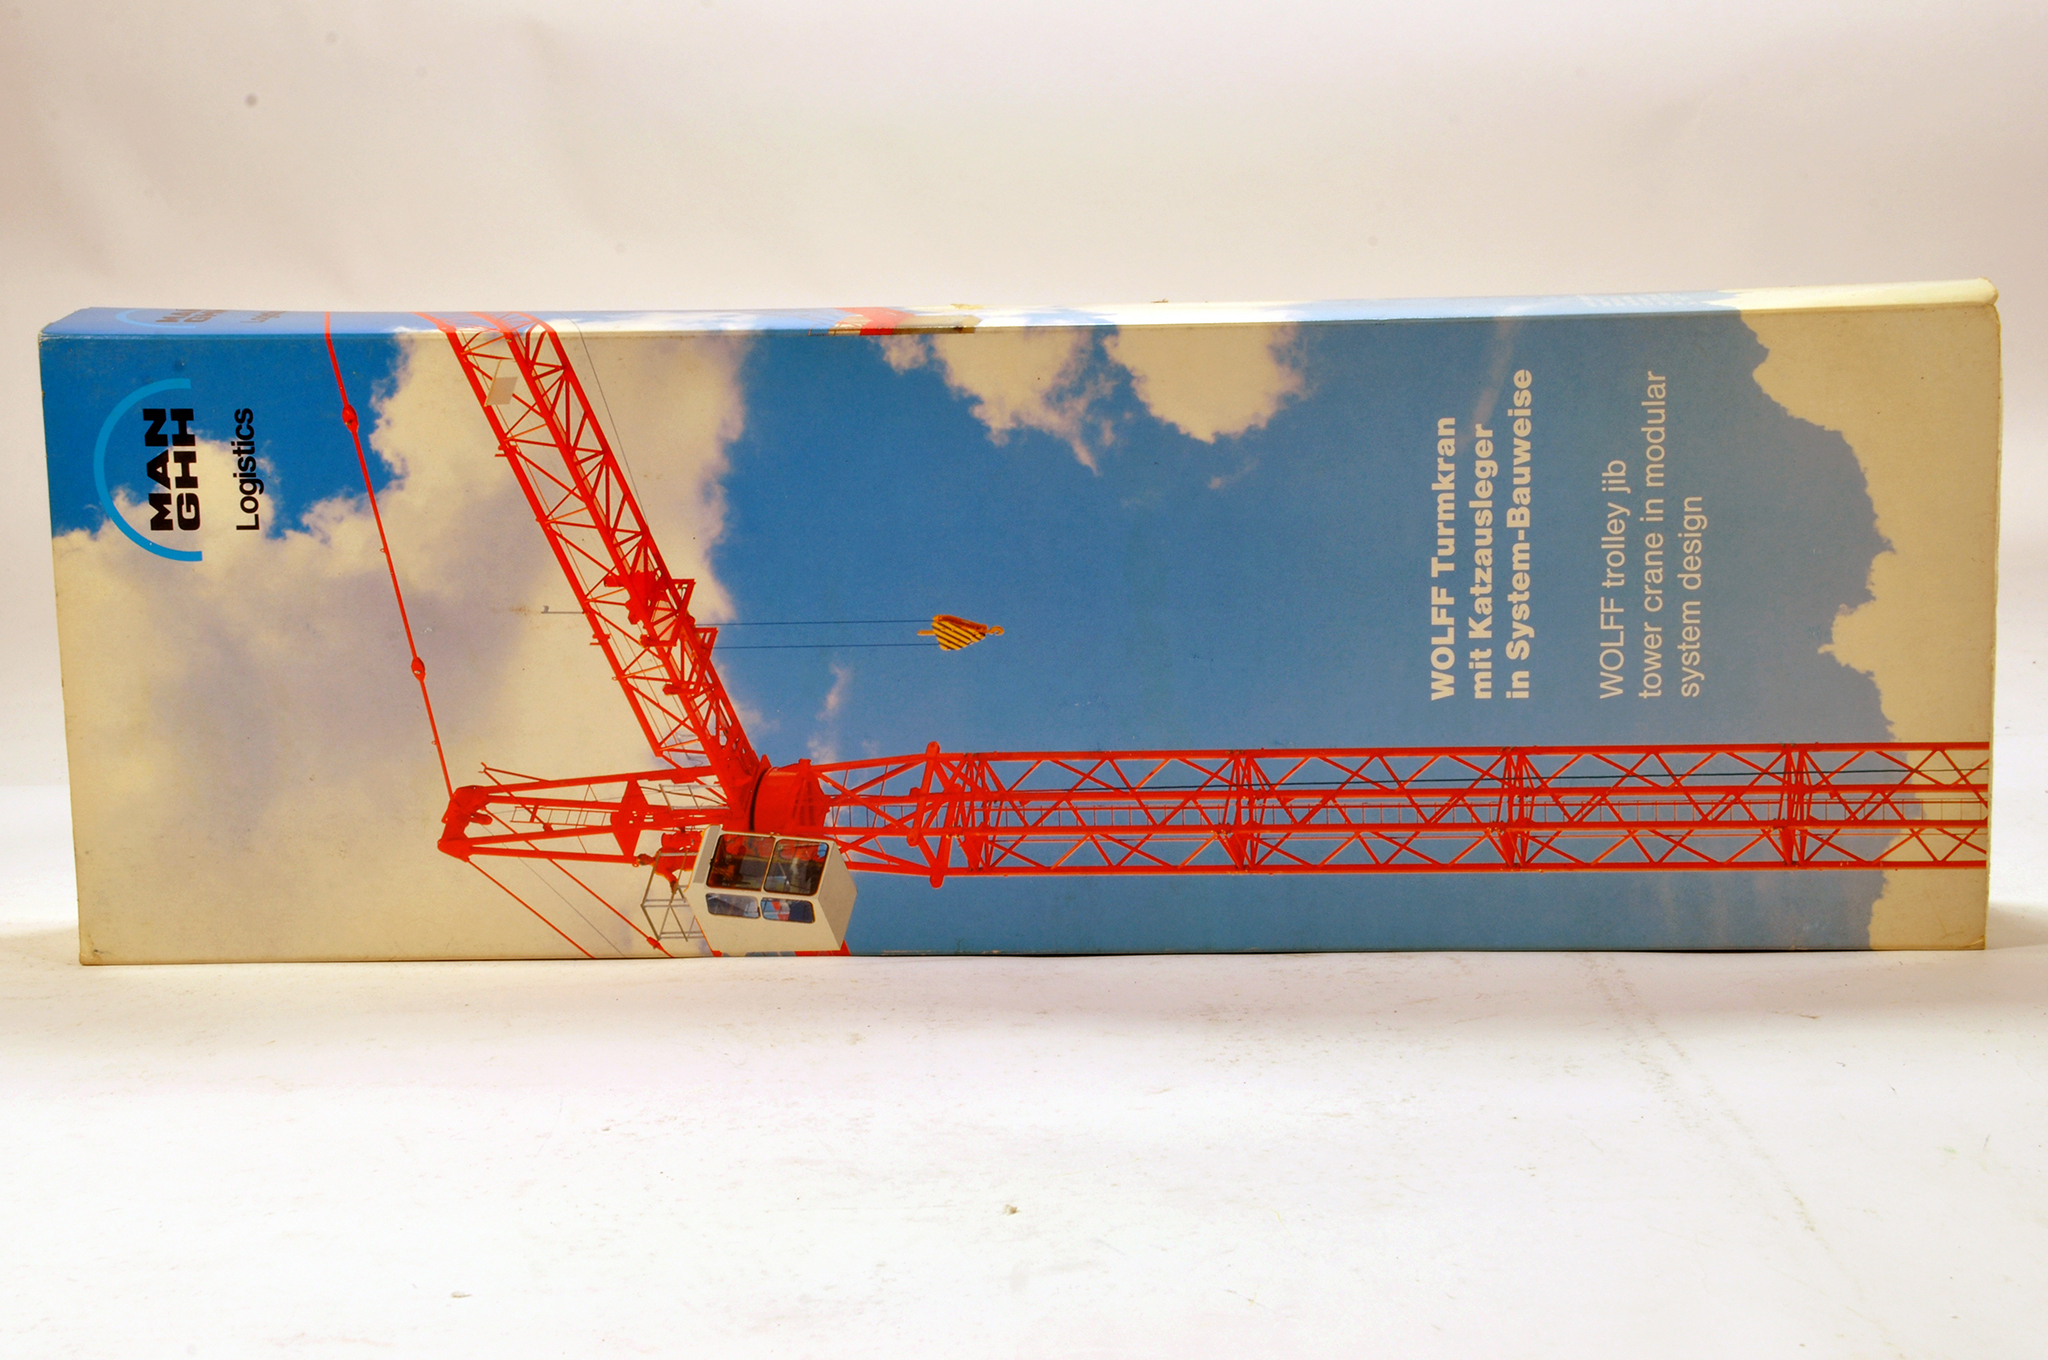 Lot 320 - Conrad 1/87 Construction issue comprising MAN Wolffkran Tower Crane. Generally E to NM.